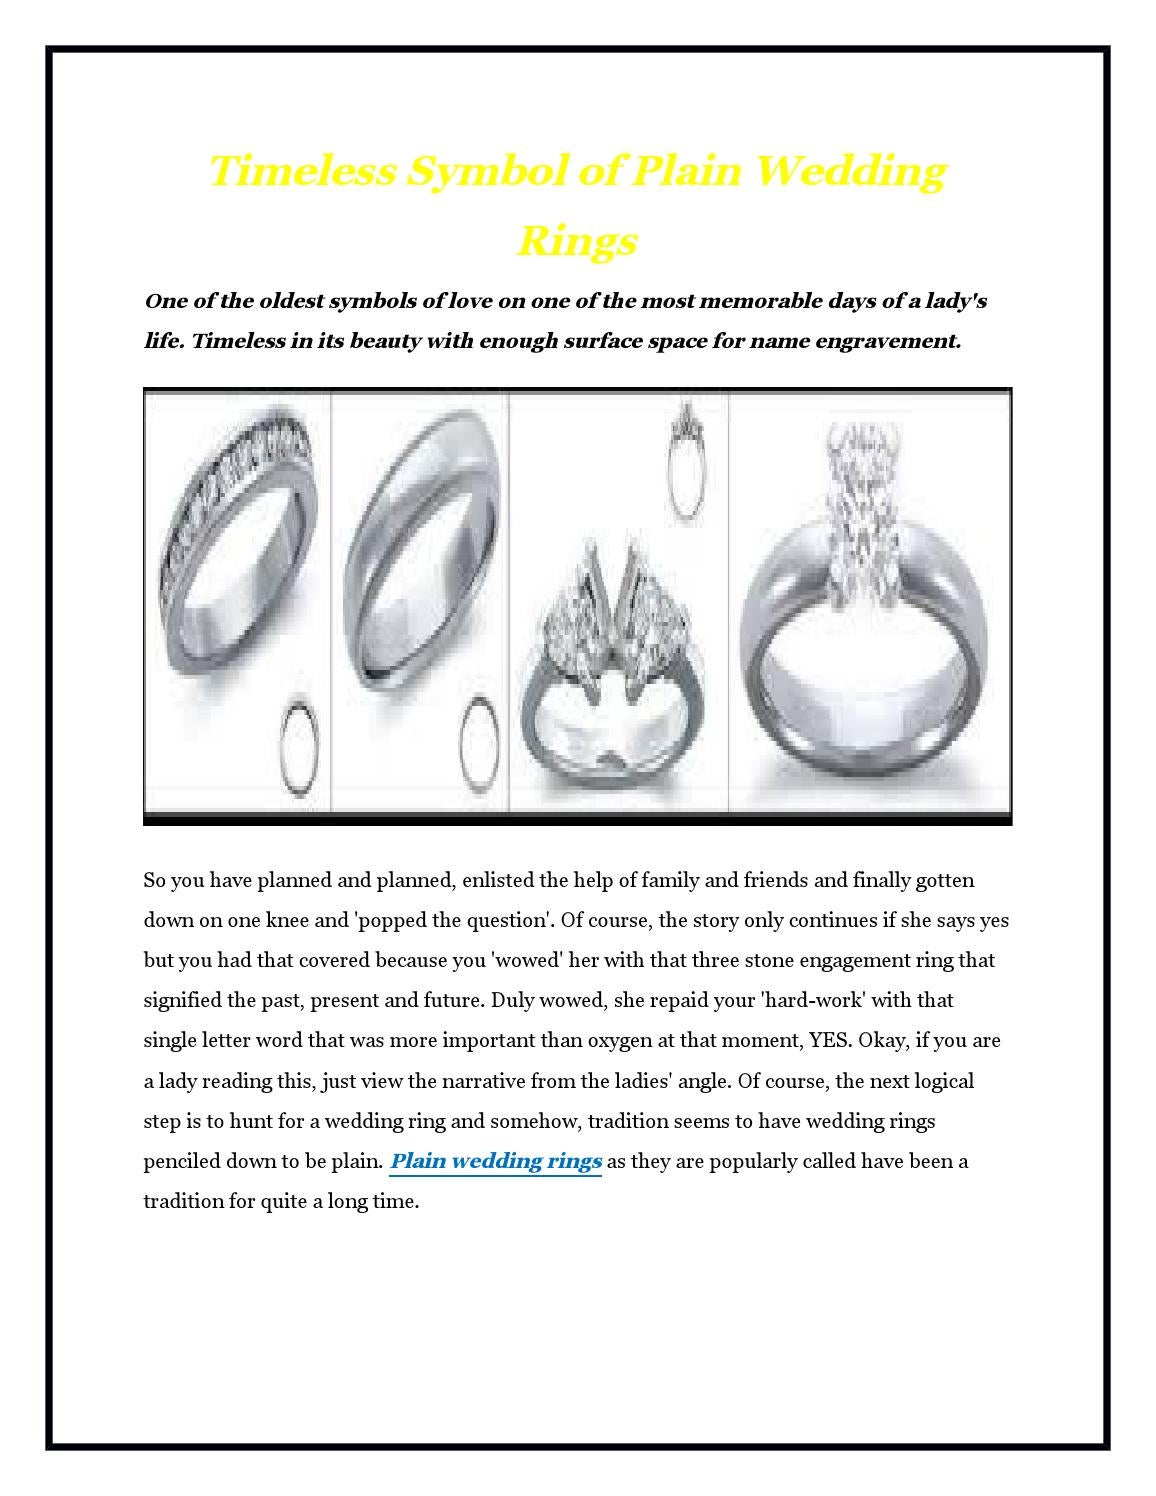 Timeless Symbol Of Plain Wedding Rings By Britneawilson Issuu